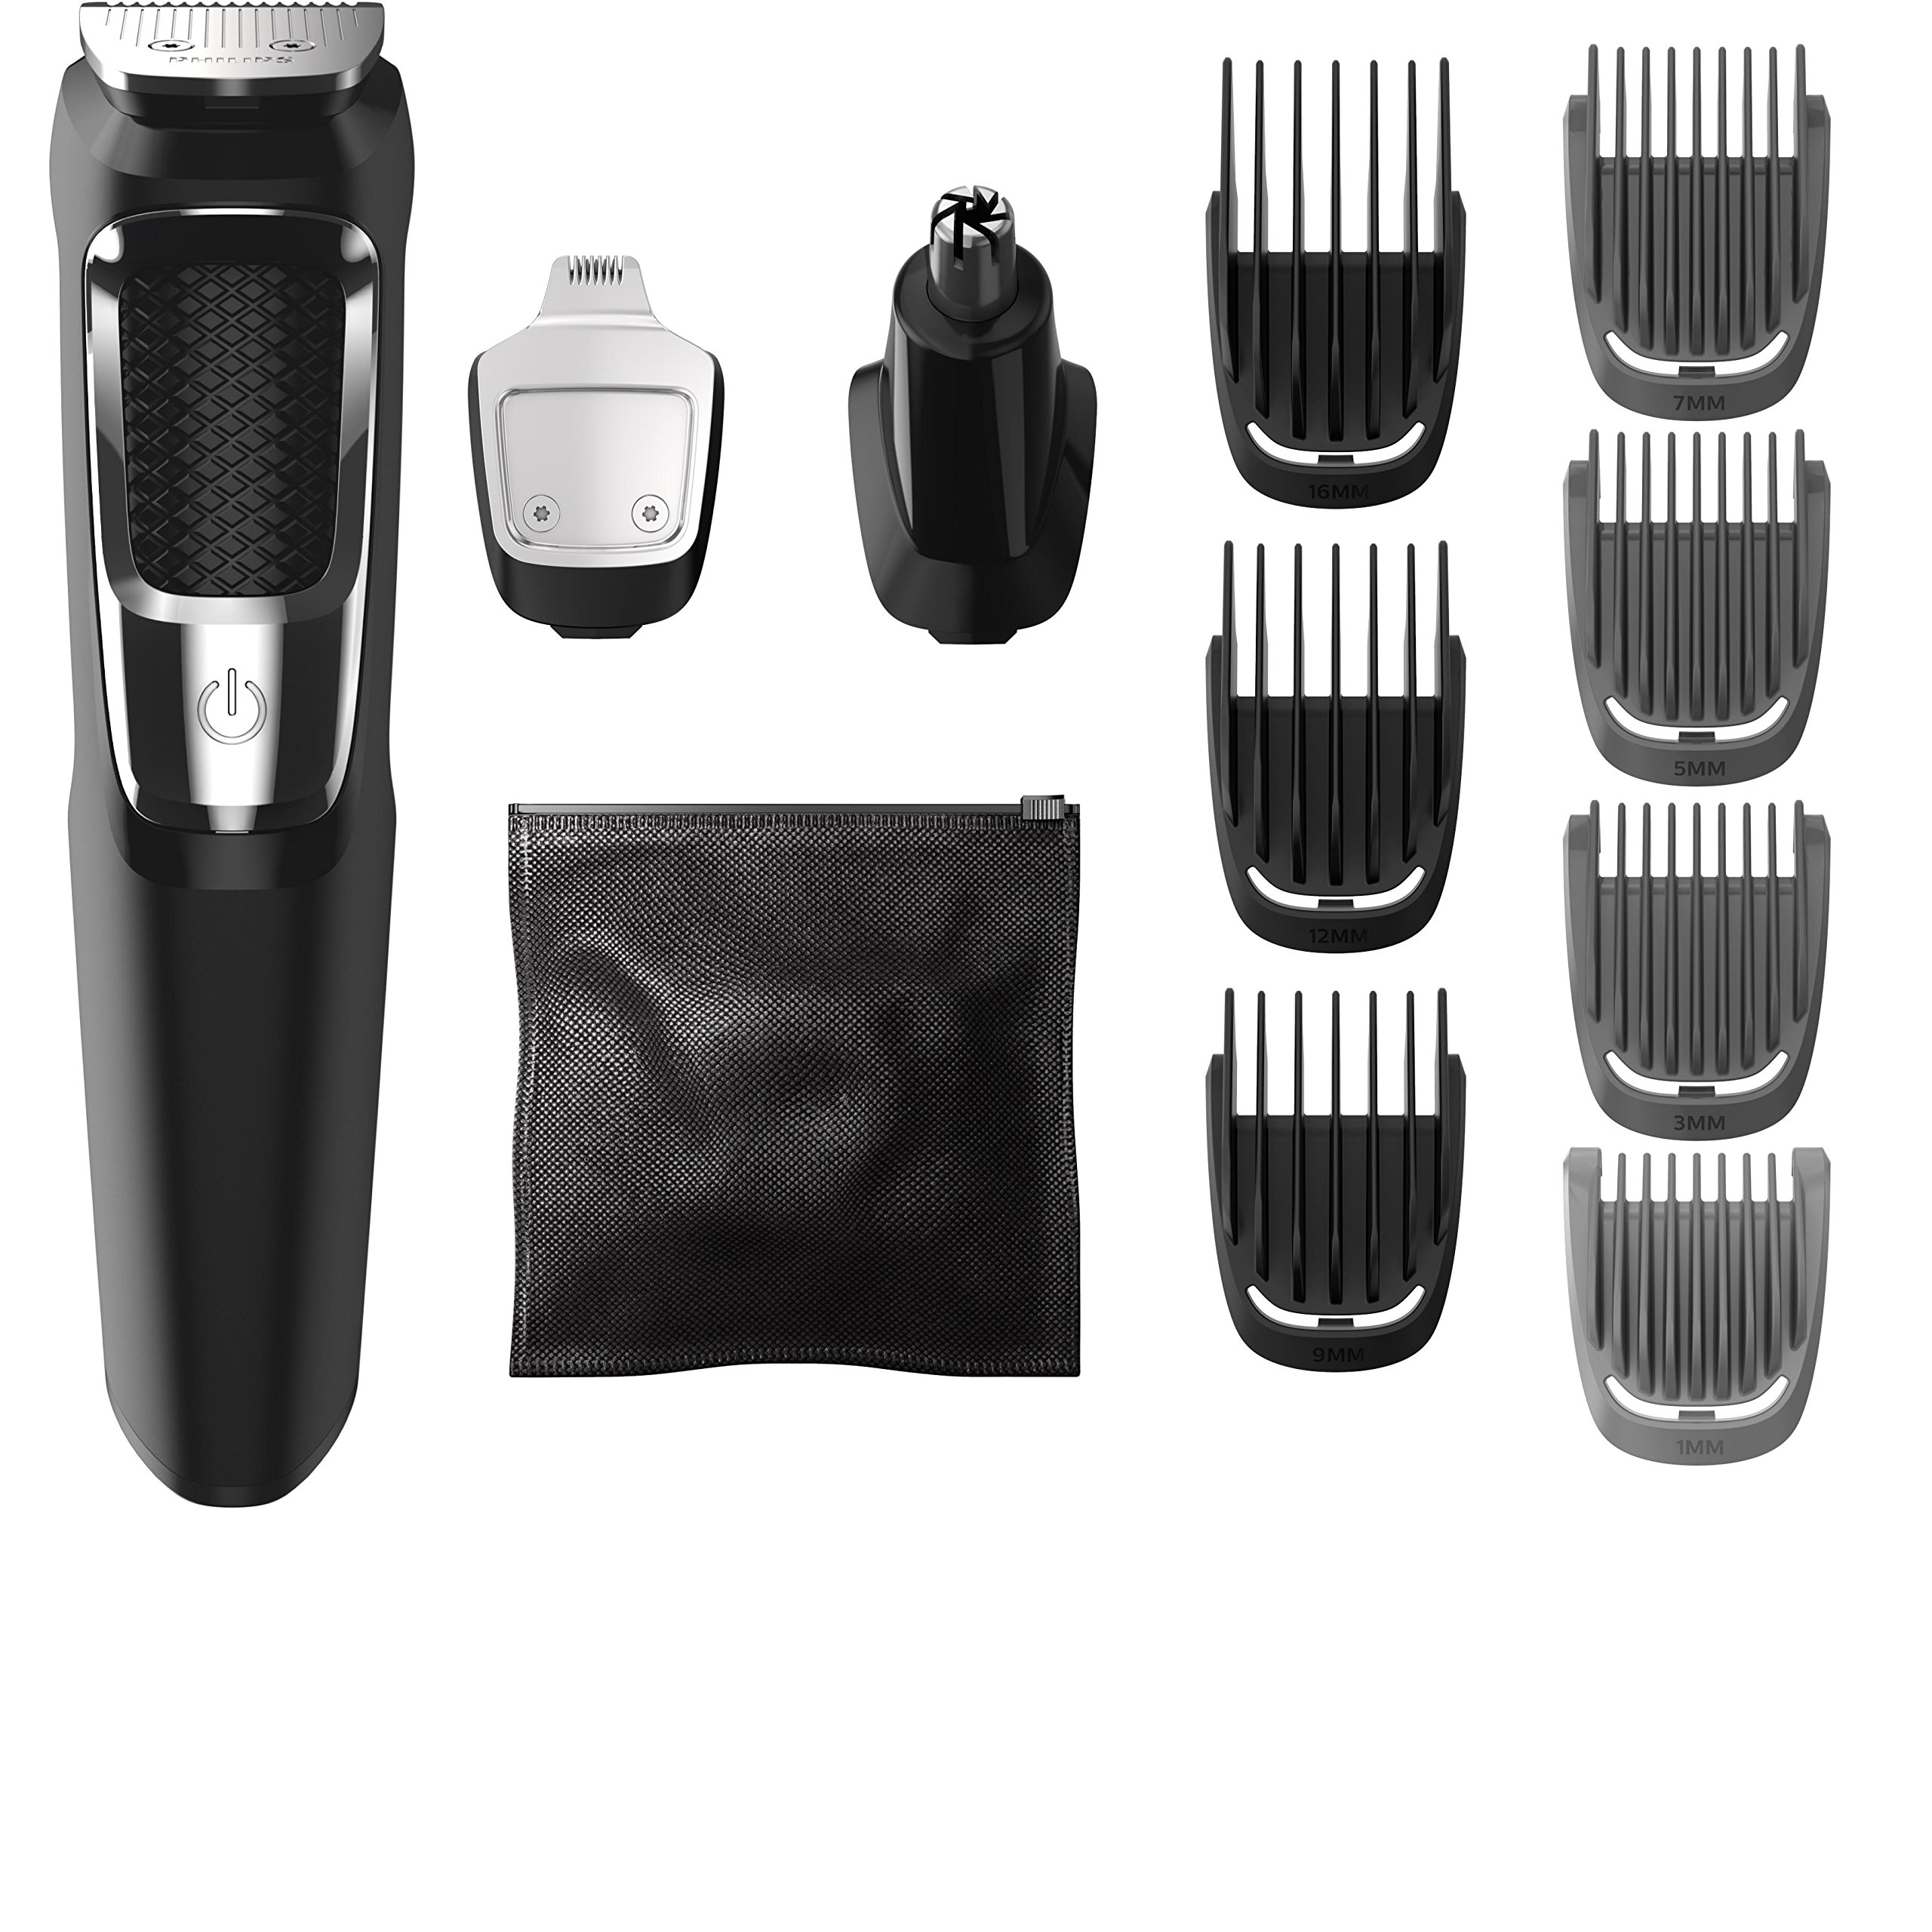 Philips Norelco Multigroom All-In-One Series 3000, 13 attachment trimmer, MG3750 by Philips Norelco